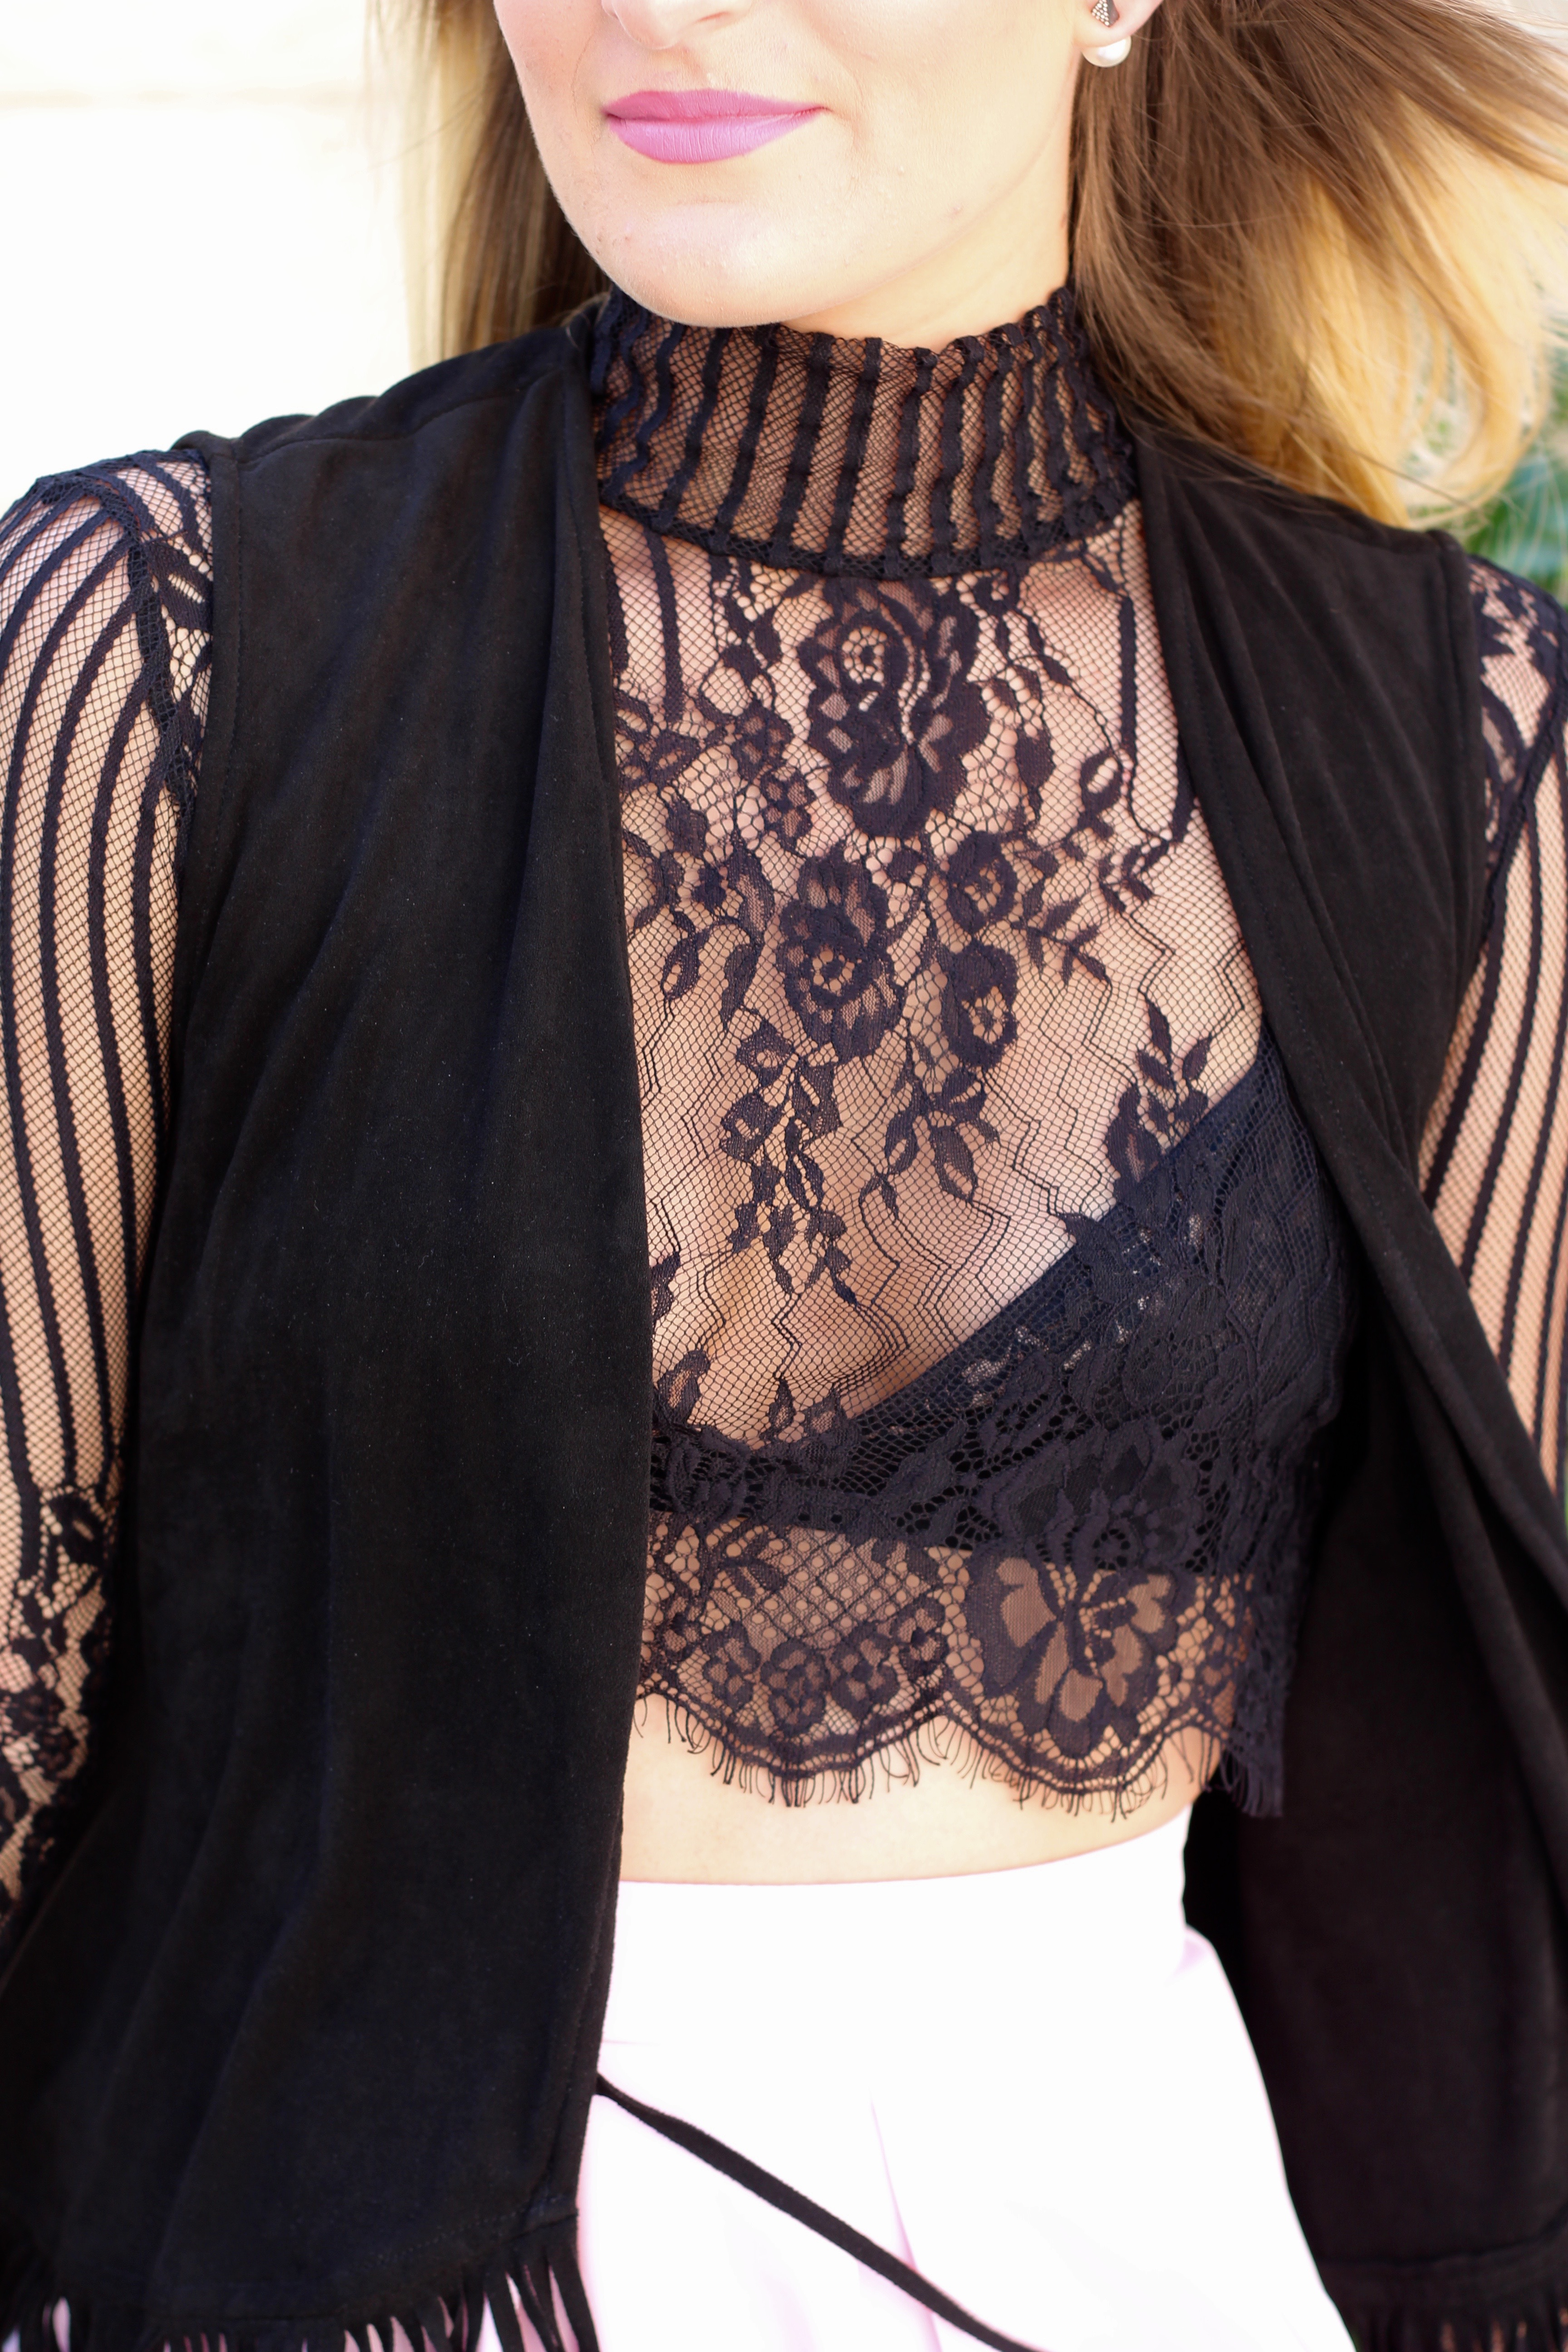 lace detailing for the lingerie look